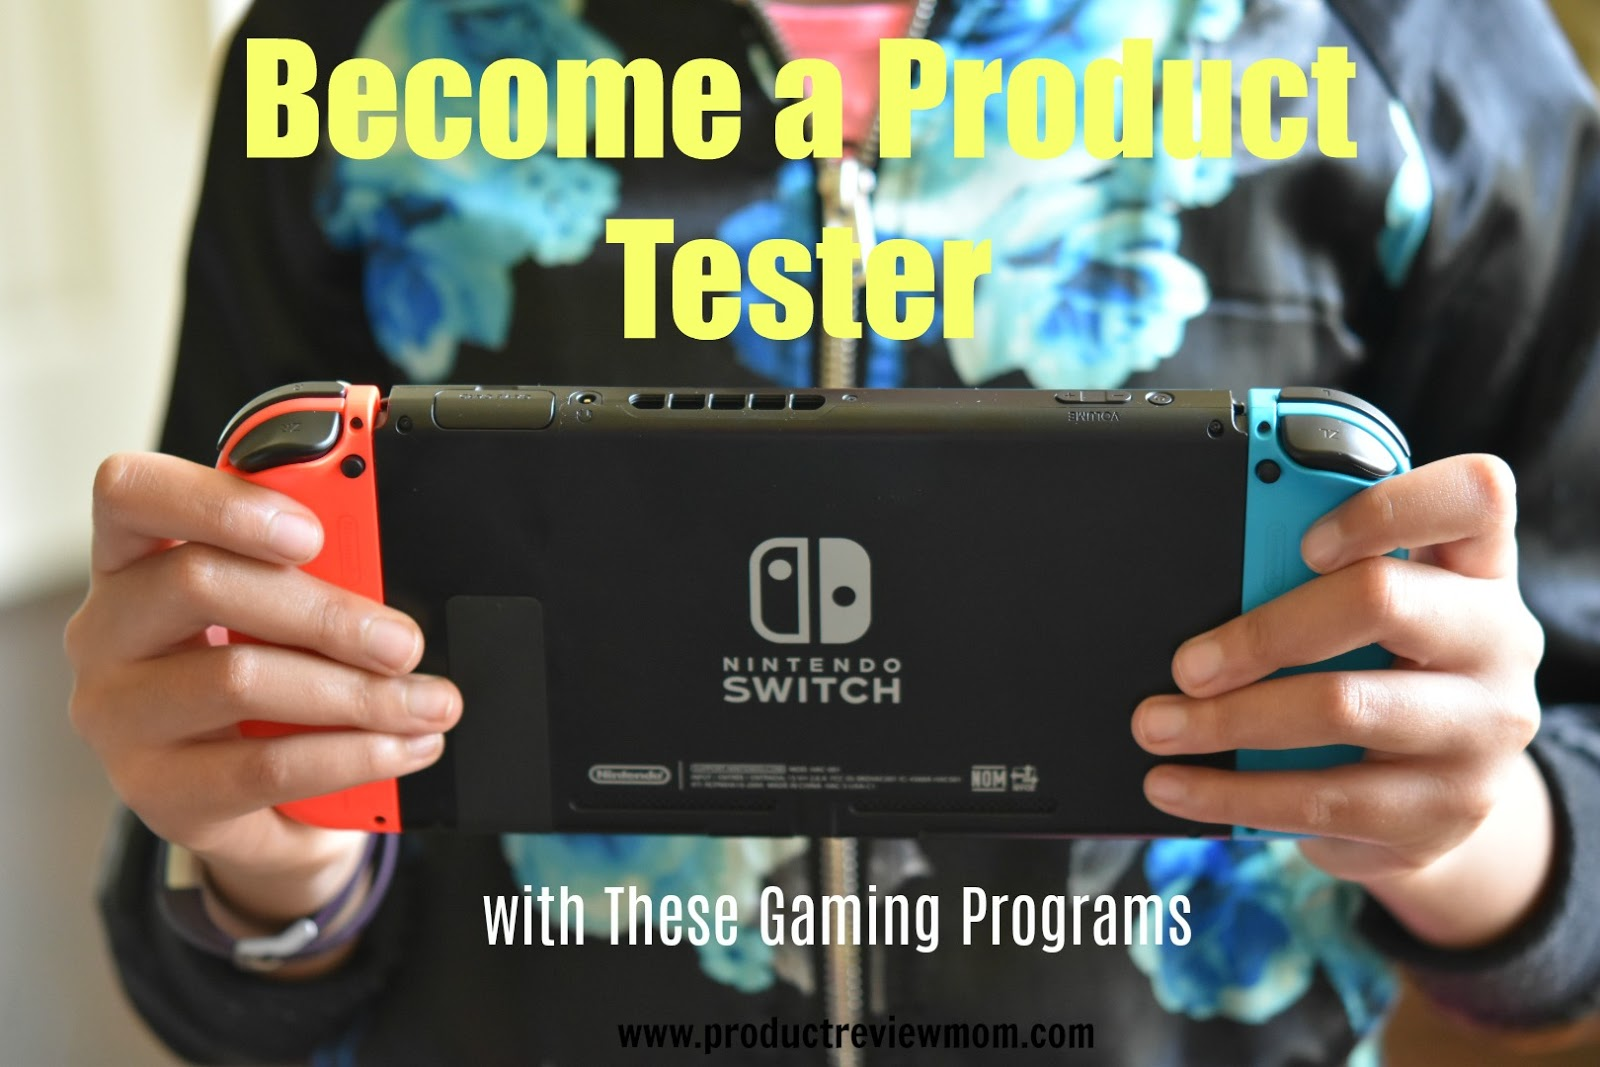 Become a Product Tester with These Gaming Programs  via  www.productreviewmom.com